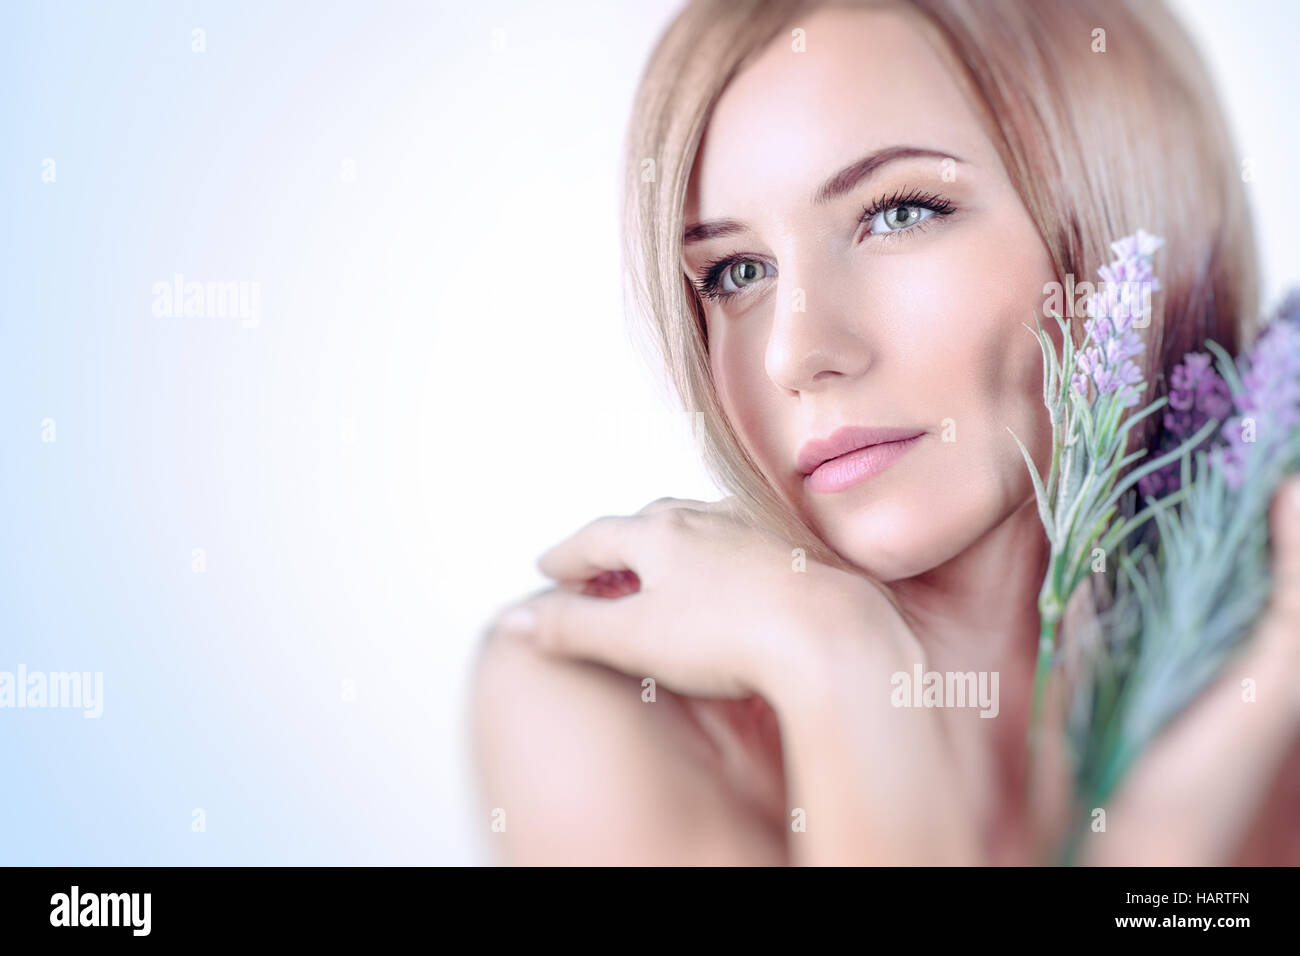 Closeup portrait of a beautiful gentle woman with lavender flower bouquet over white and blue background, aroma - Stock Image